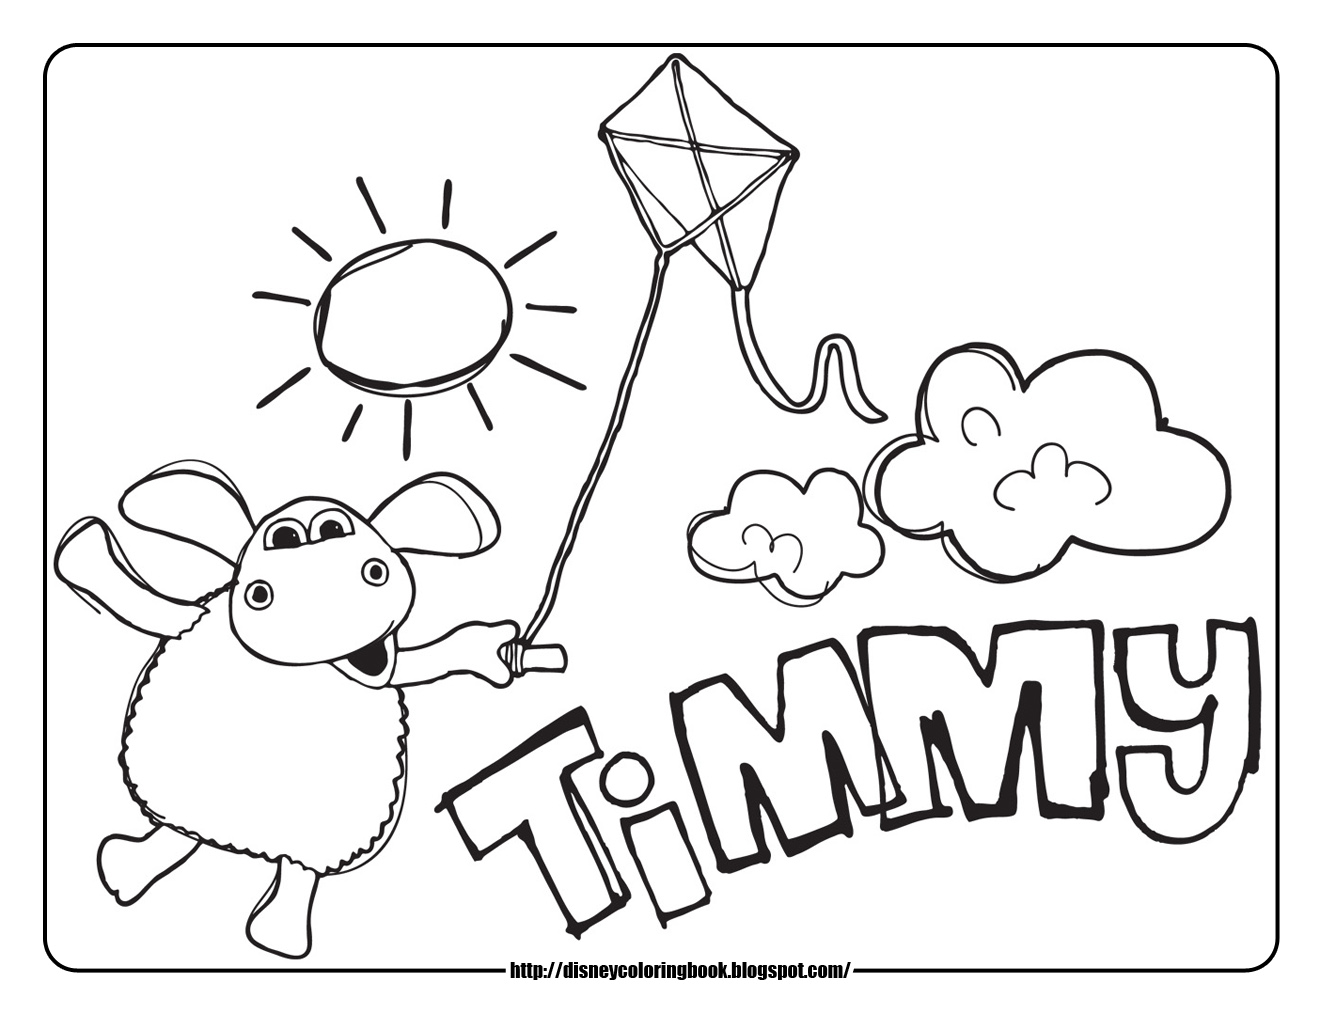 Timmy Time 1: Free Disney Coloring Sheets | Learn To Coloring